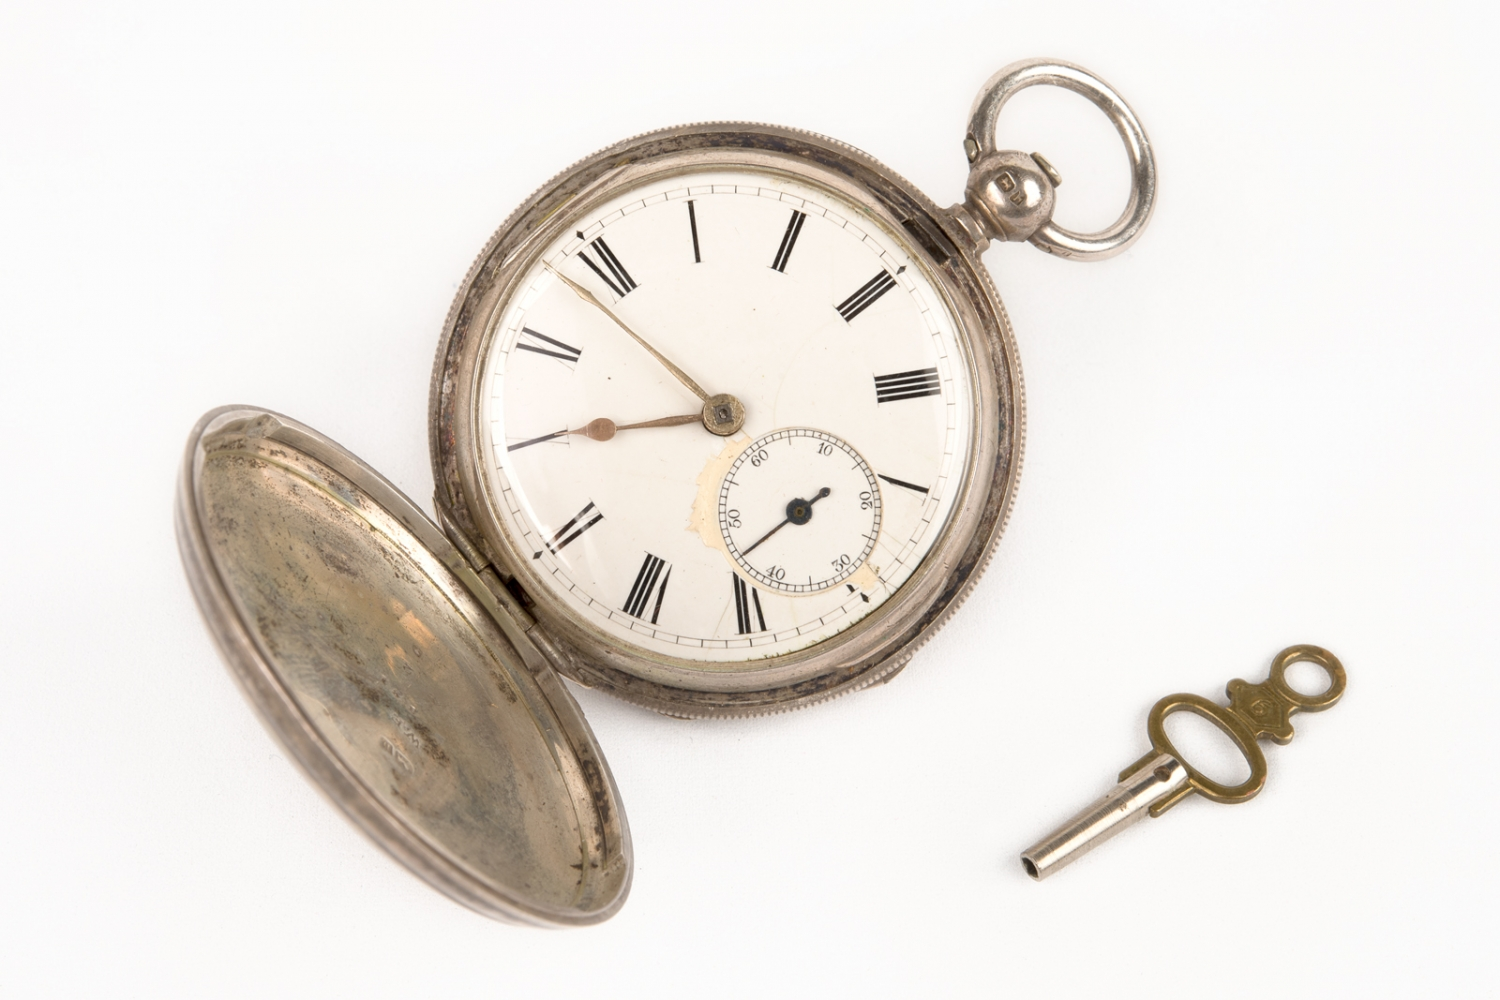 Pocket watch and winding key, circa 1863, belonging to Hugo Youngein who operated shop at Susannah Place